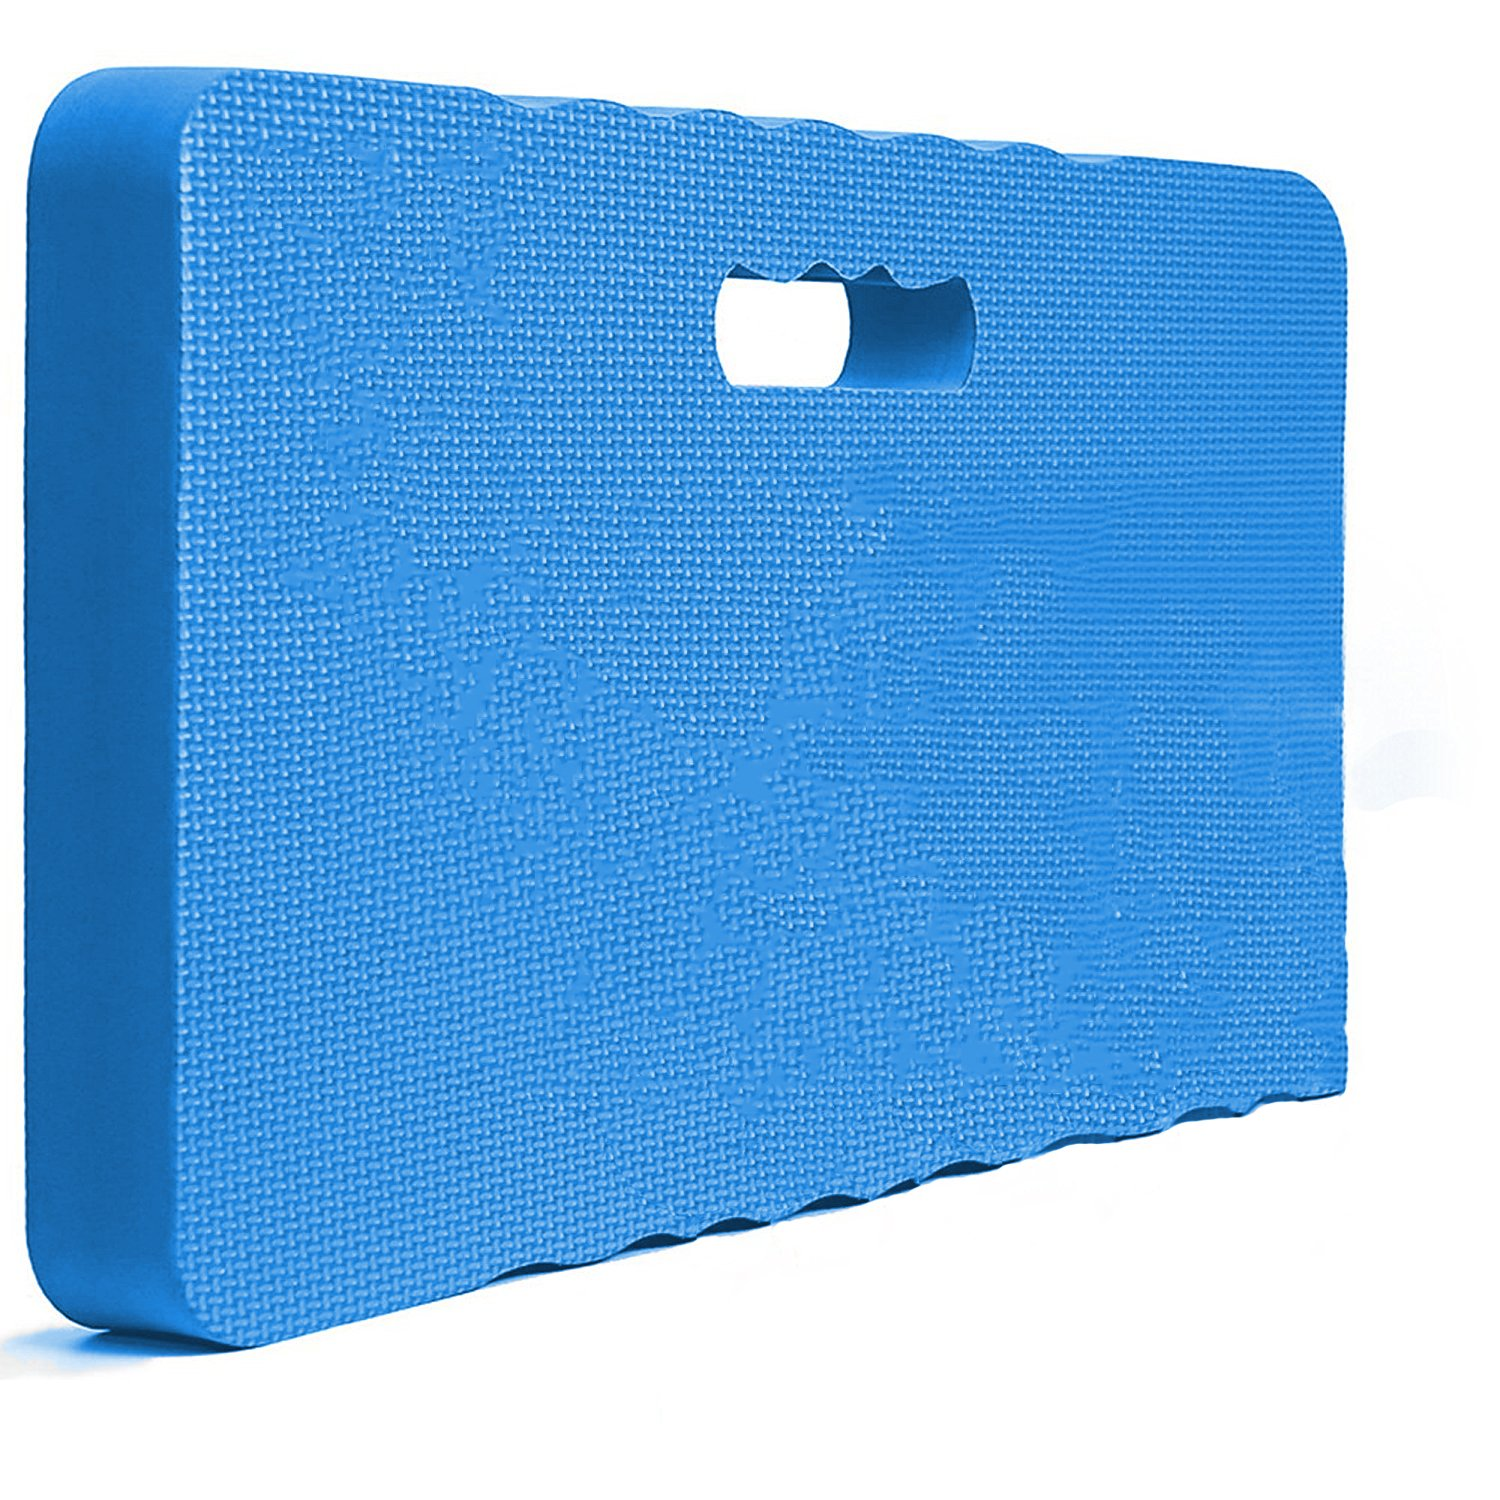 Thick Kneeling Pad - Garden Kneeler for Gardening, Bath Kneeler for Baby Bath, Kneeling Mat for Exercise & Yoga Portable Kneeling Cushion Pad - 18'' X 10'' X 1.6'' - Blue